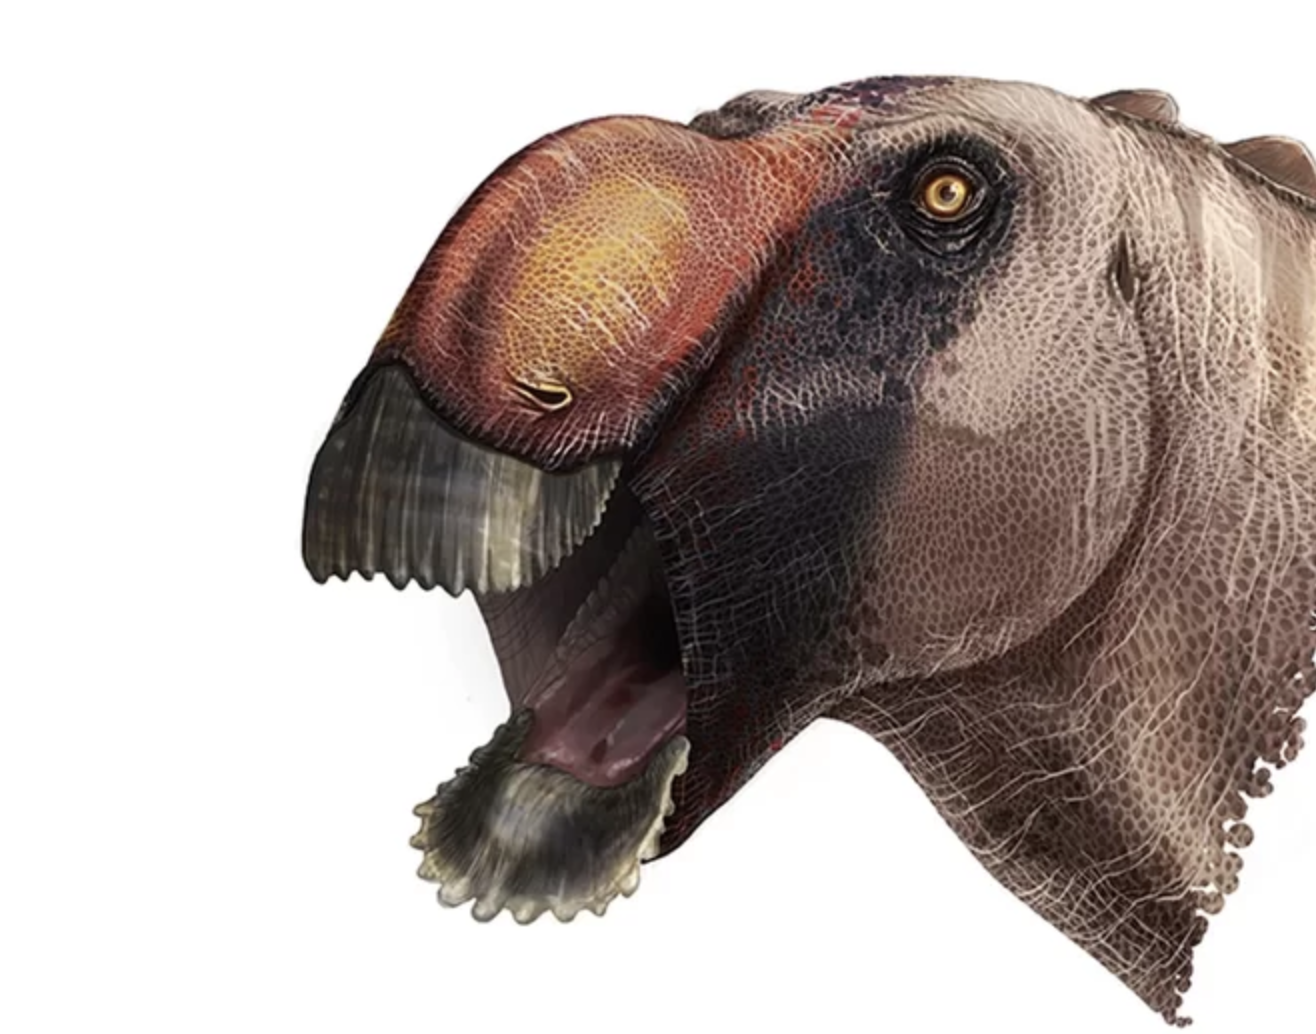 This Duck-Billed Dino Is One Weird-Looking Creature